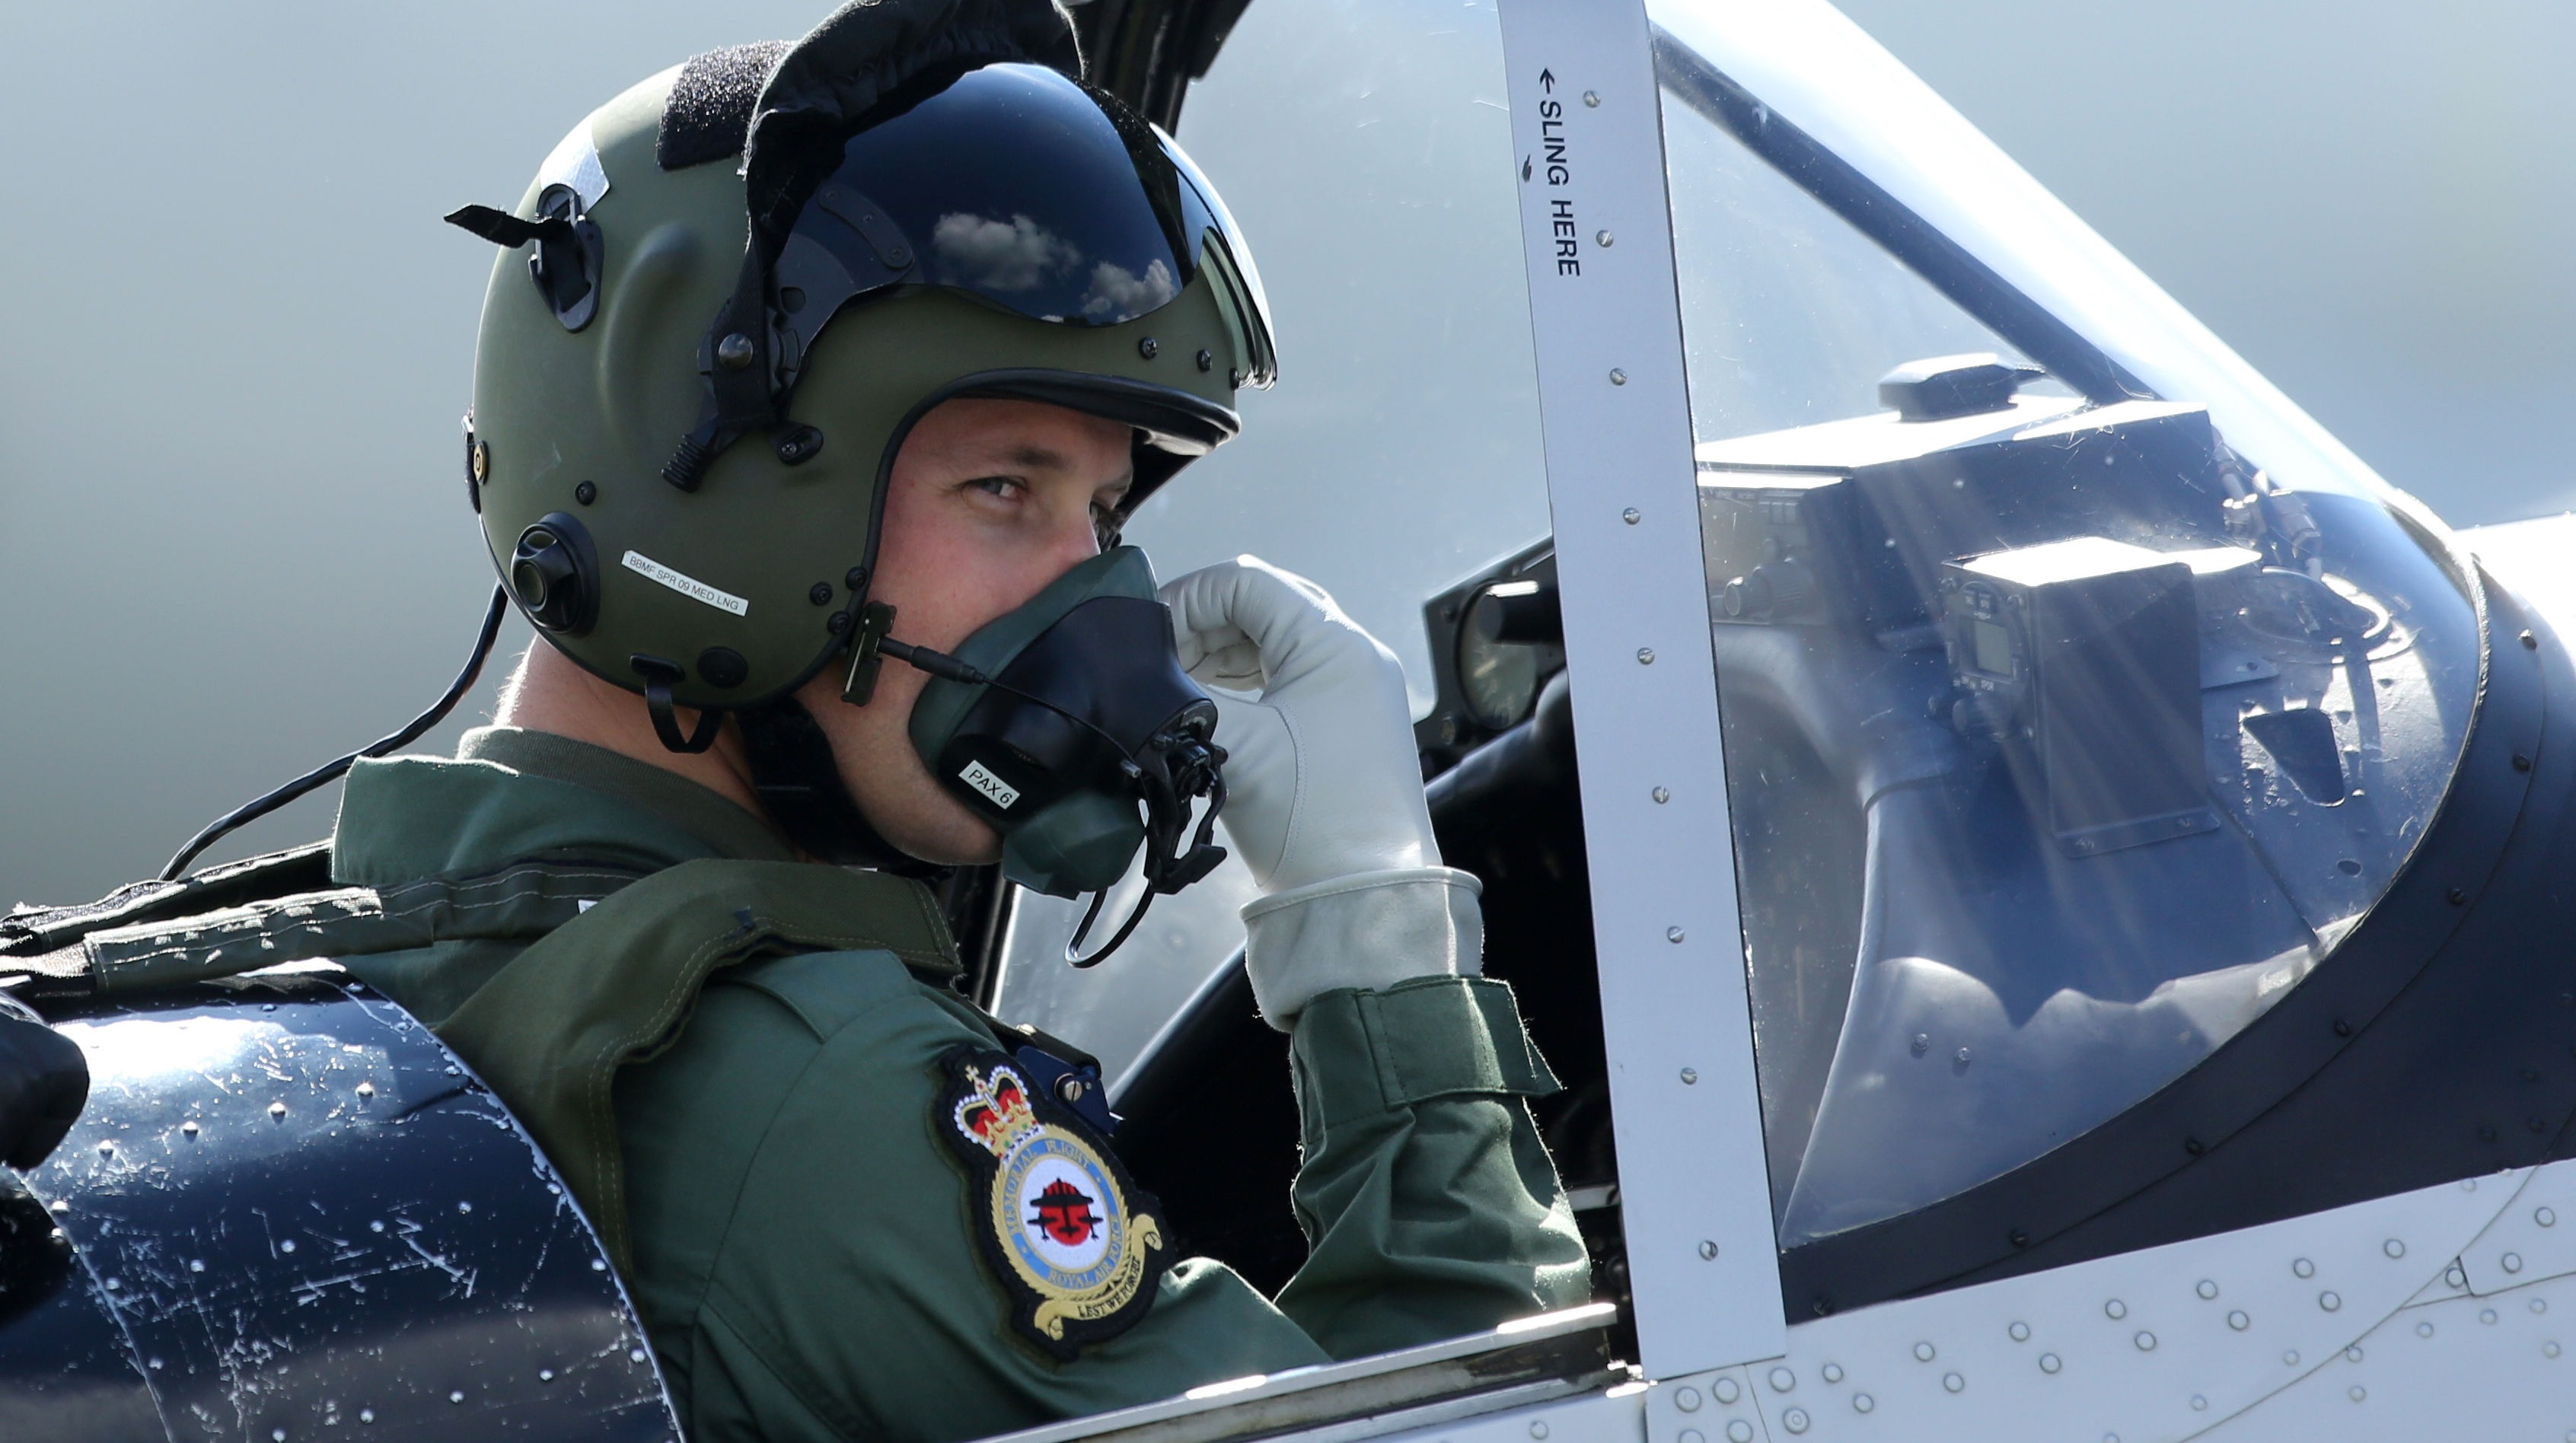 Prince William Makes Flying Visit To Raf Base To Mark